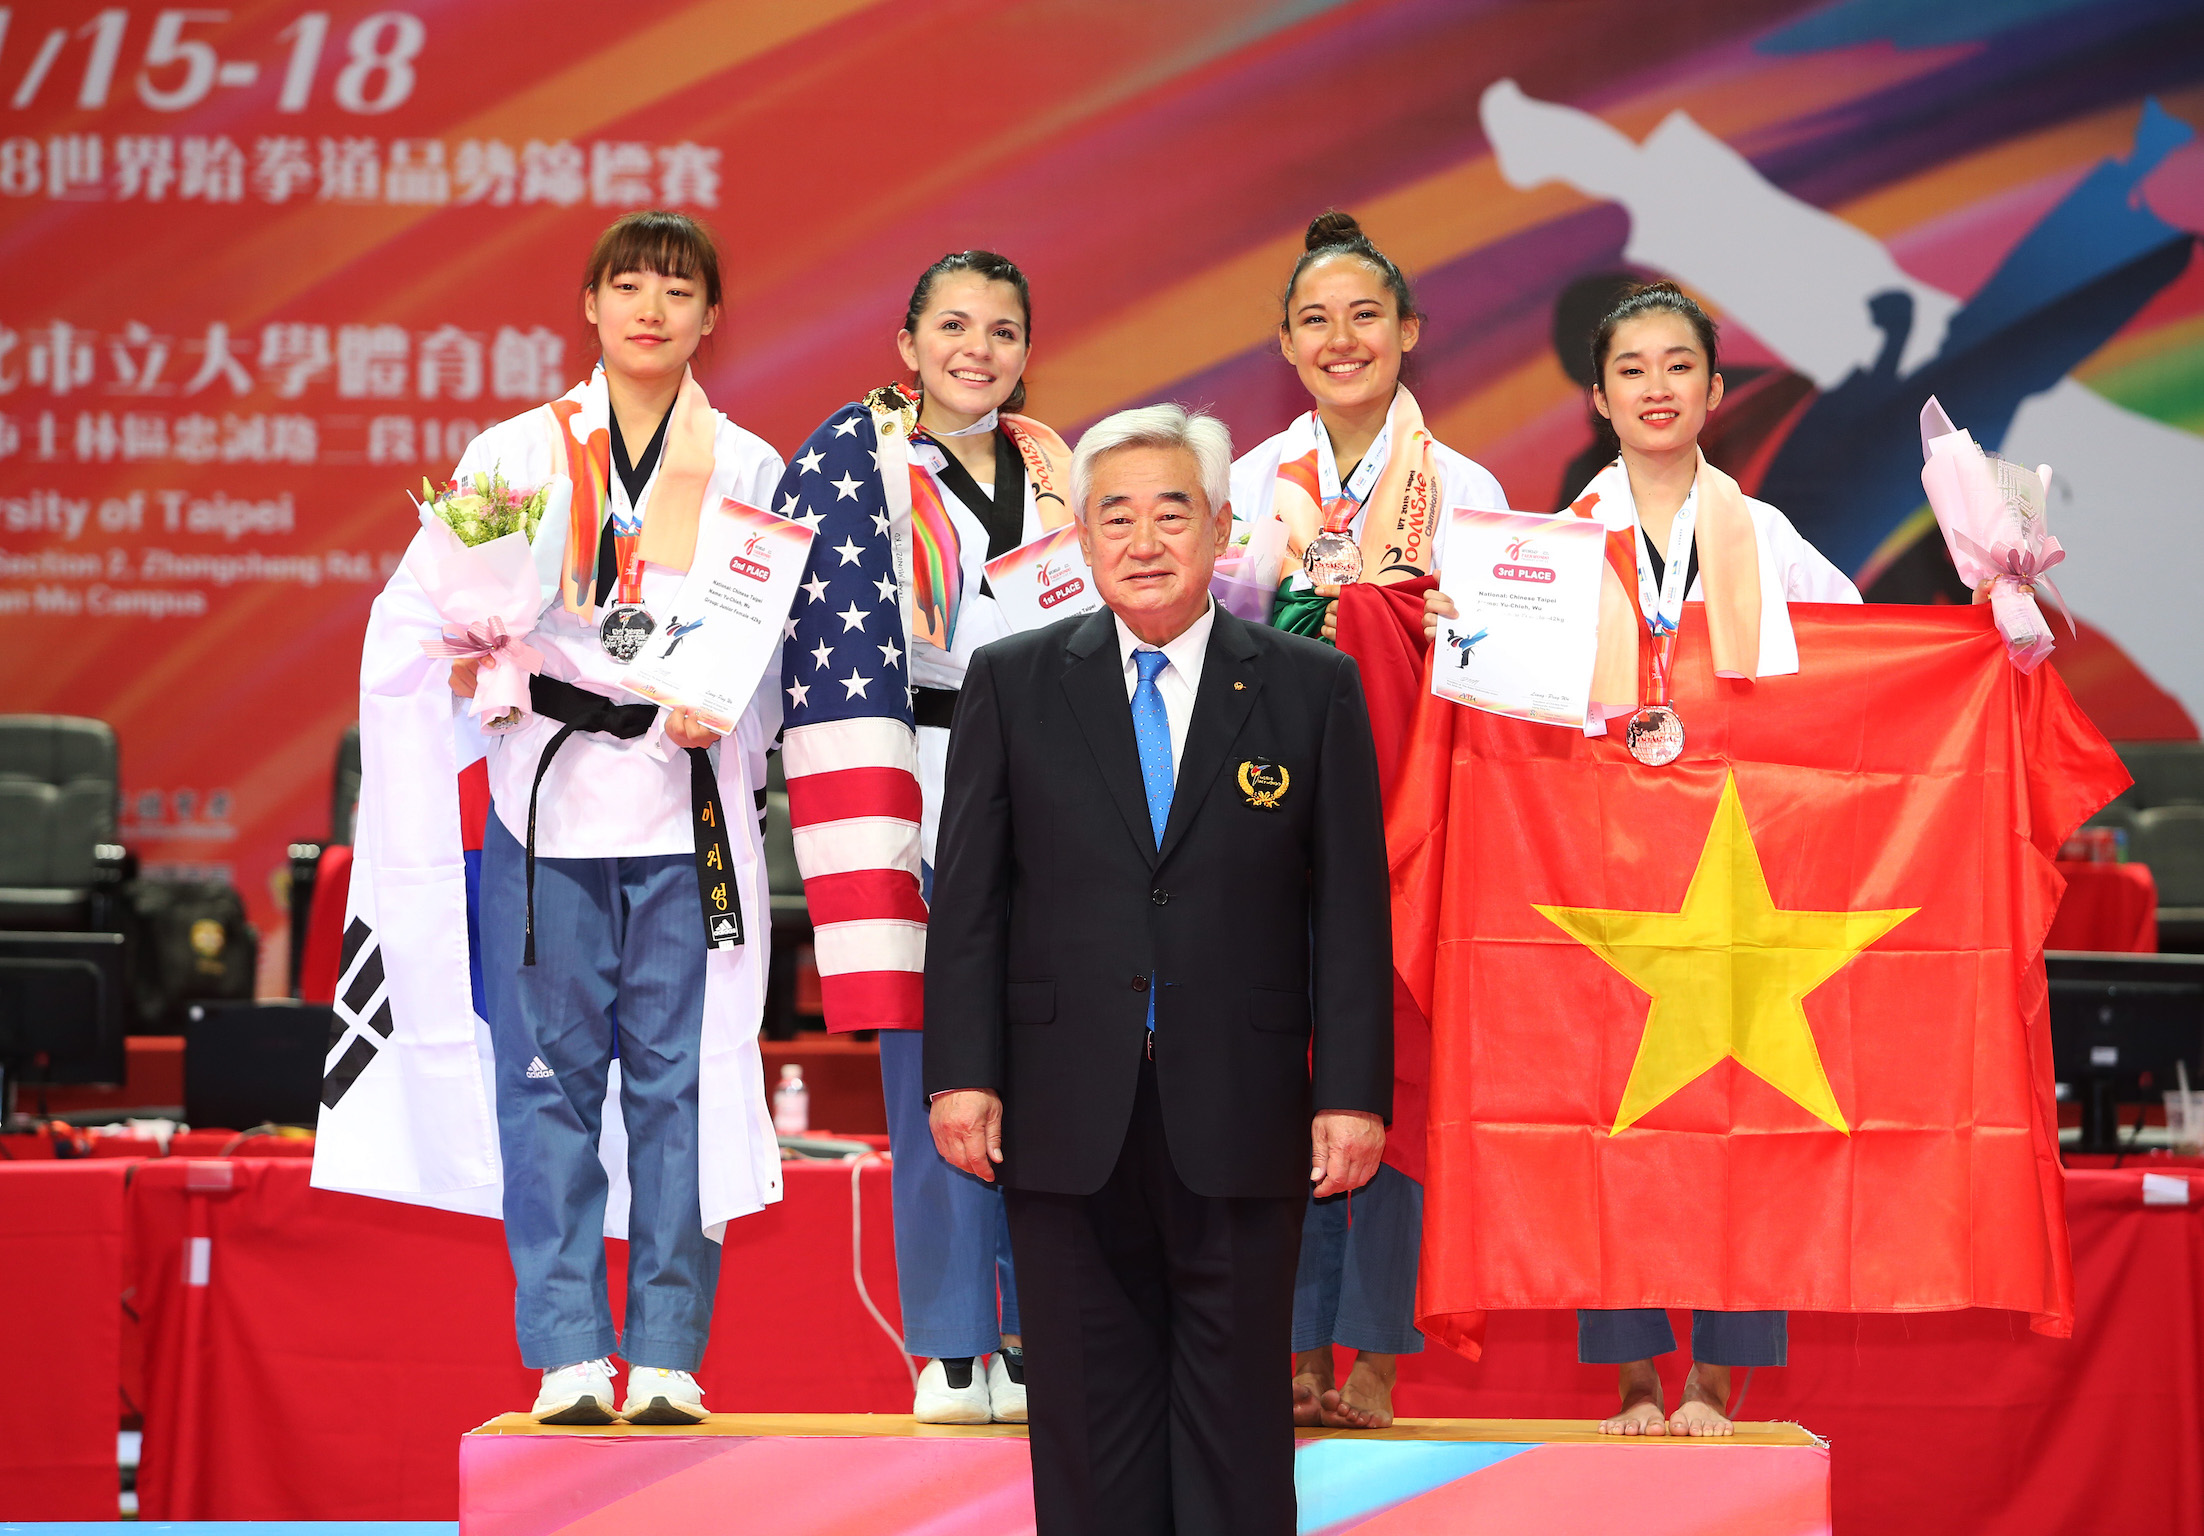 Awarding ceremony of Freestyle Individual Female Over 17 with WT President Chungwon Choue at Day 1